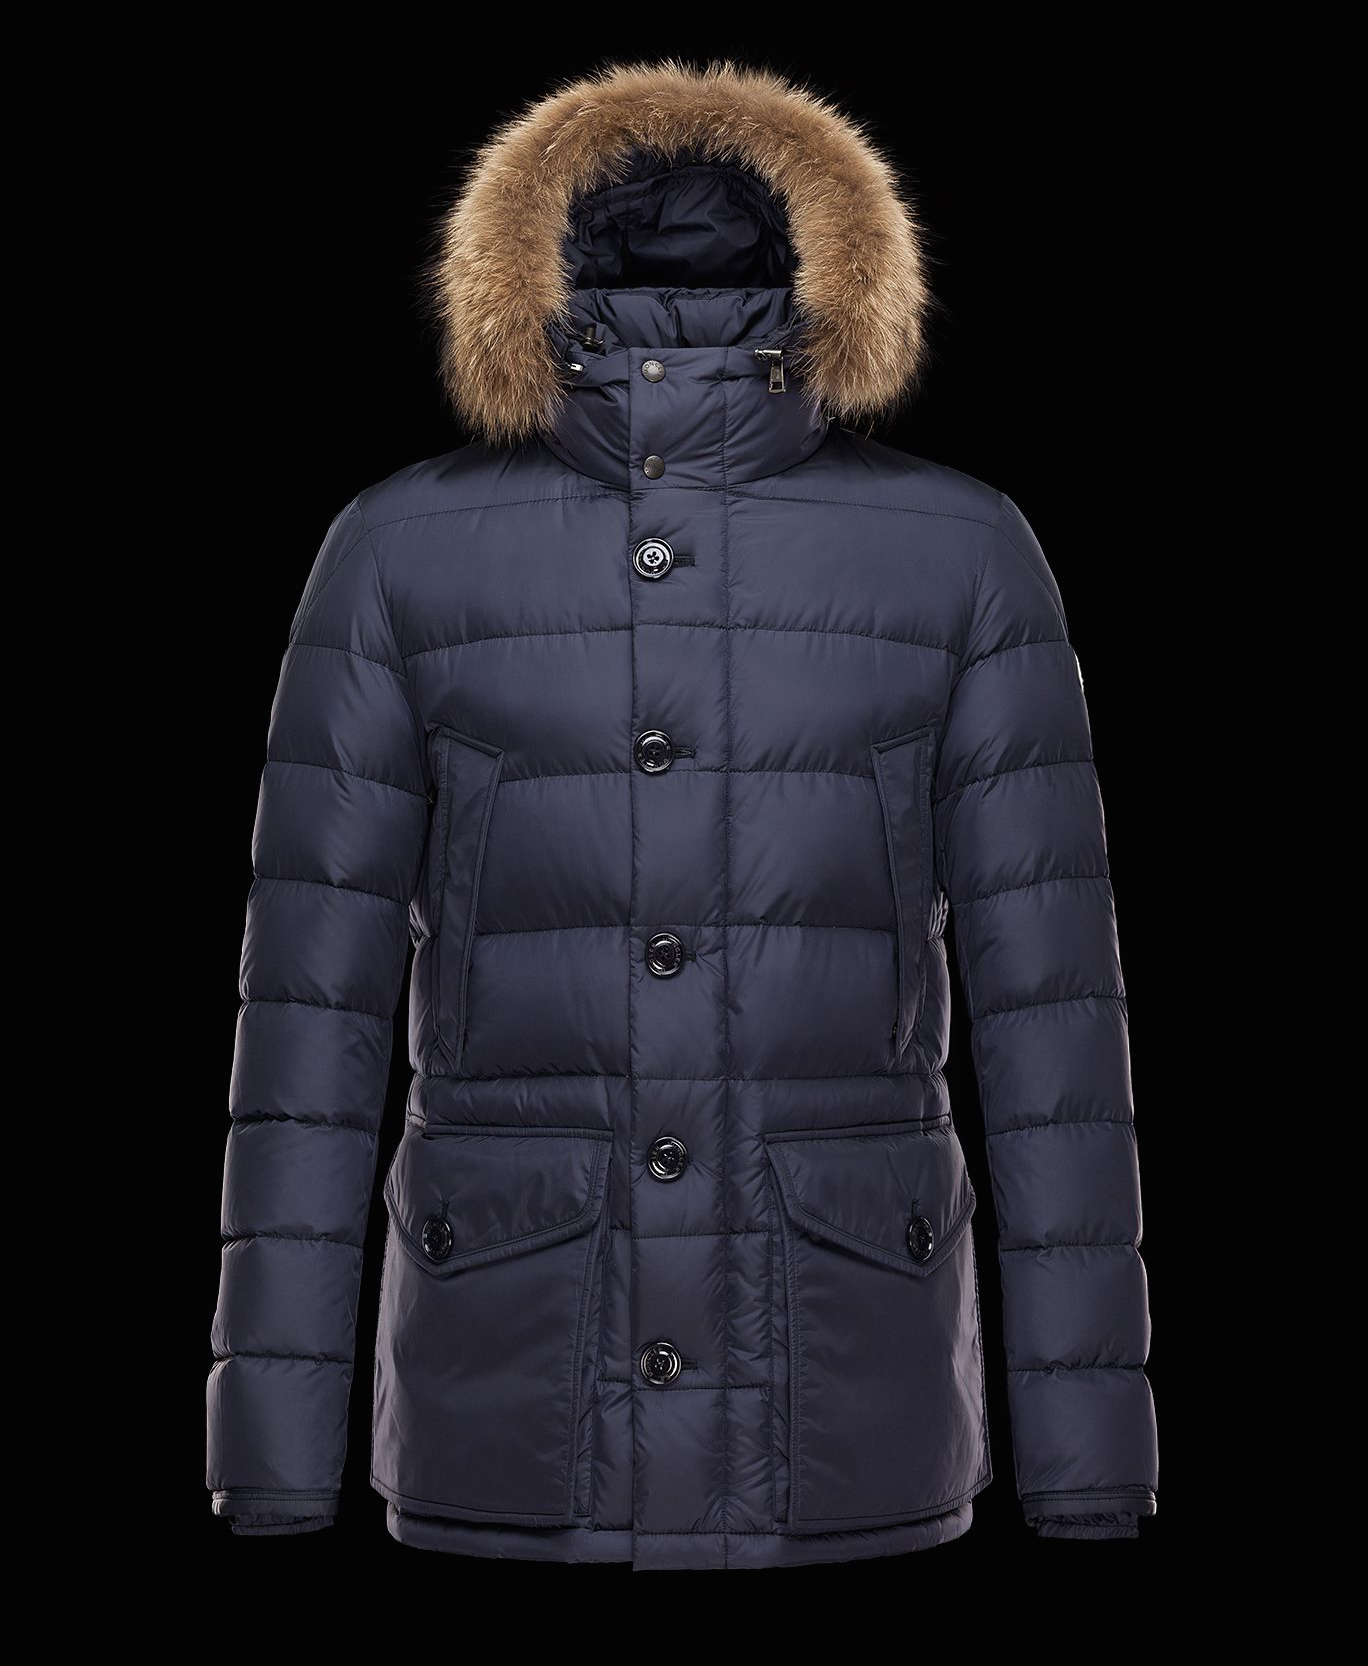 the Moncler down jacket on effortlessgent.com